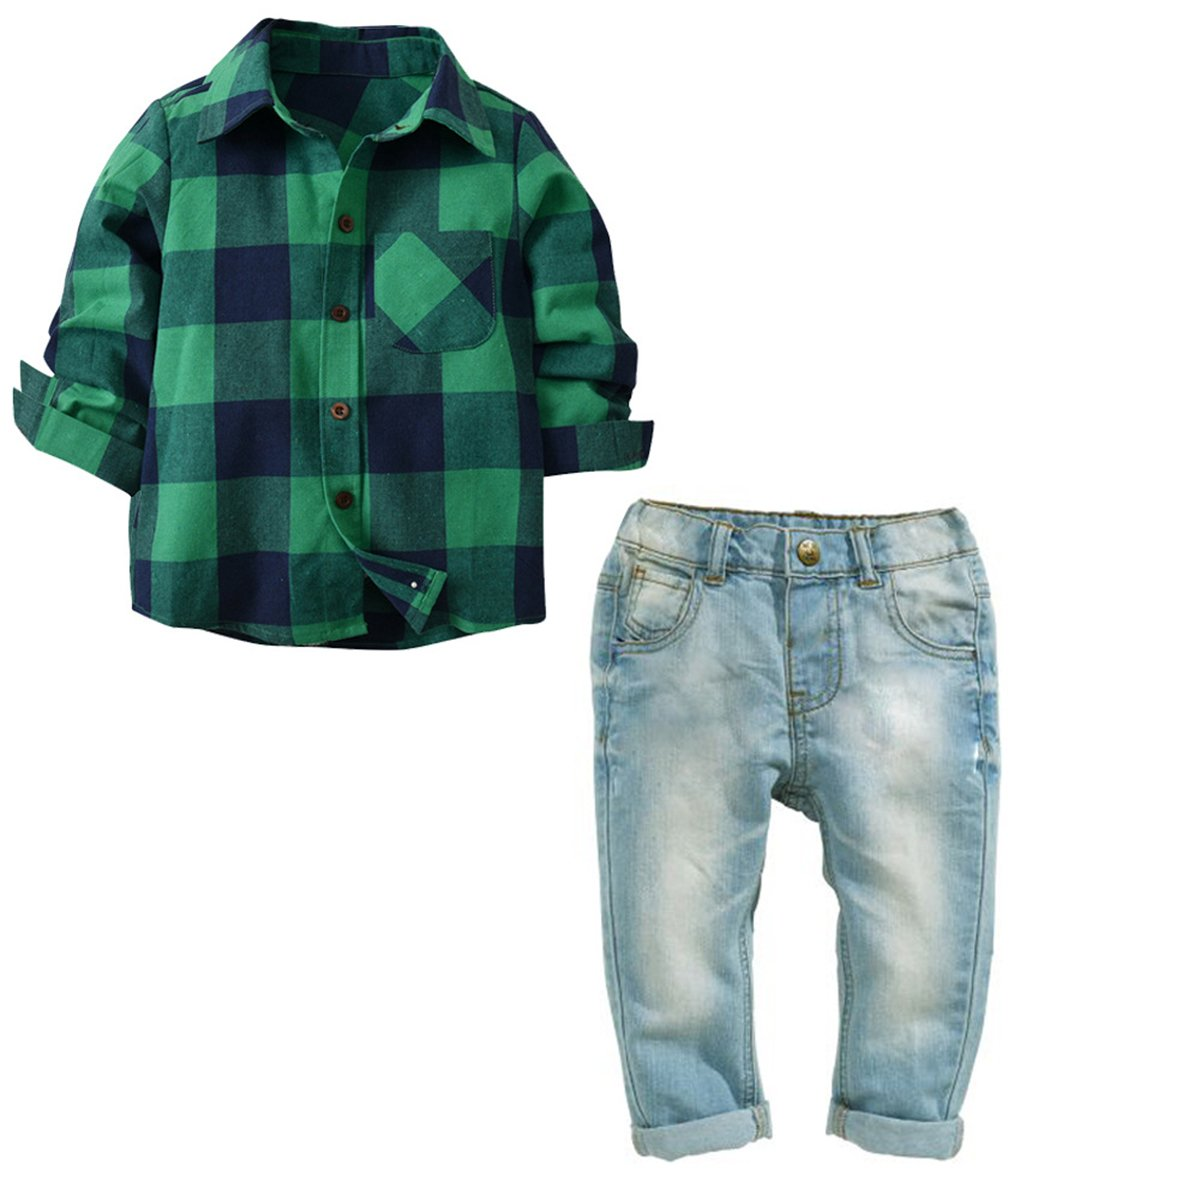 AIKSSOO Kids Outfit Clothes Boys 2 Piece Long Sleeve Plaid Shirt and Denim Jeans Clothing Sets Size 2-3 Years (Green Plaid)